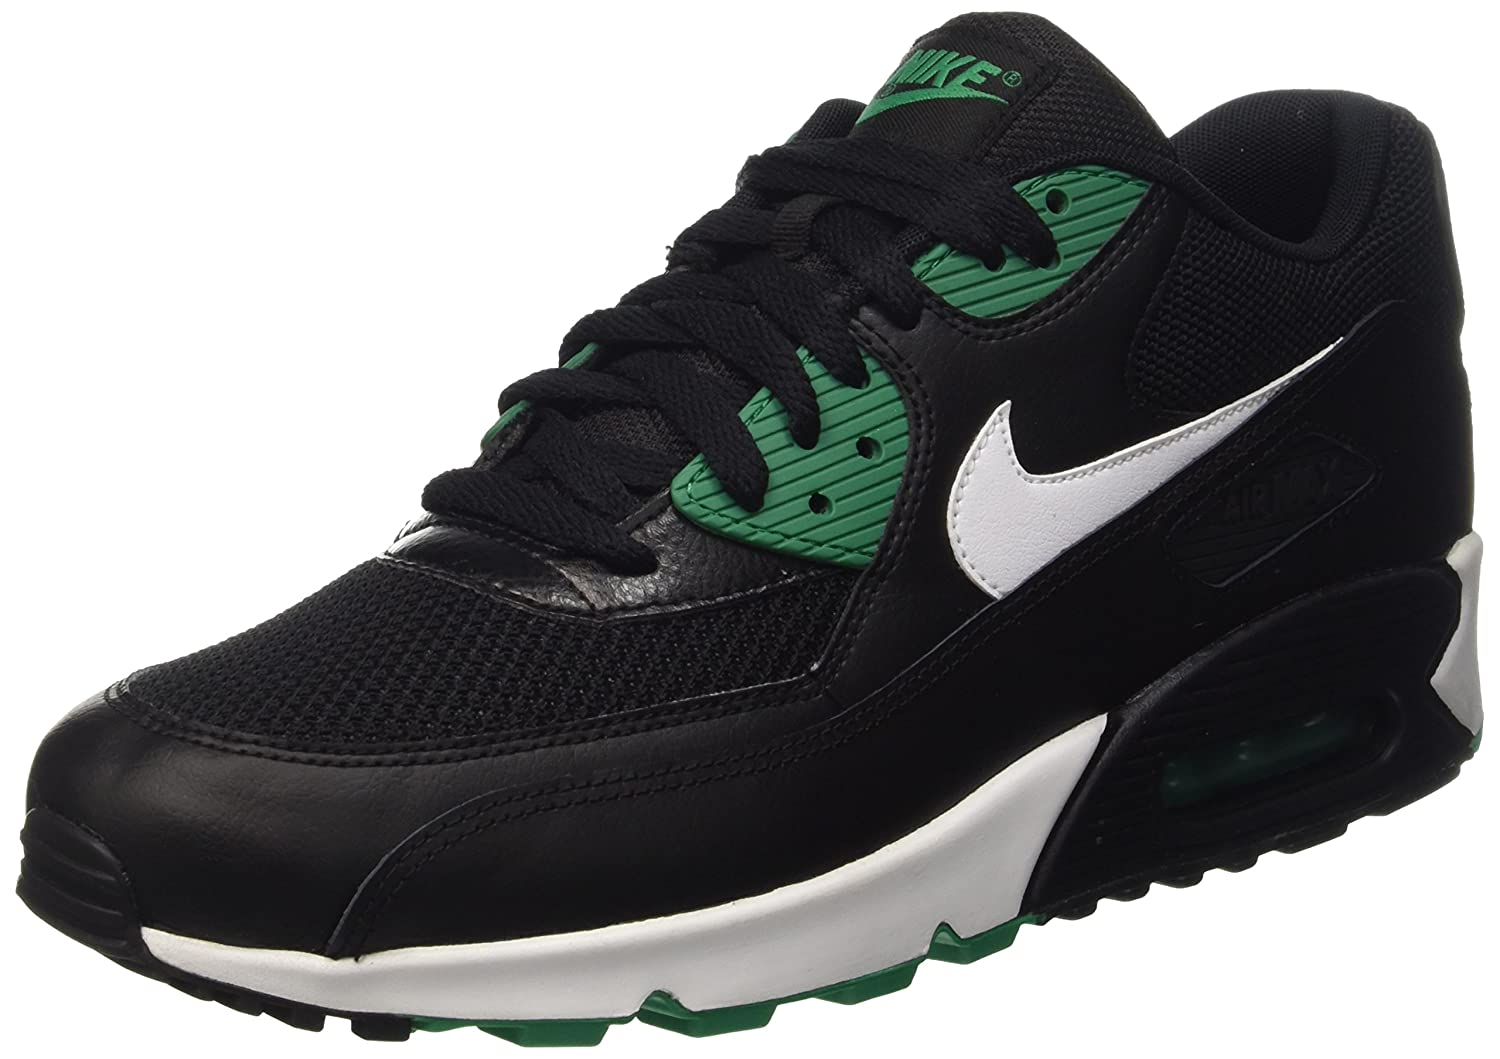 new arrivals 1dcf5 ad2d2 Nike Air Max 90 Essential Mens Style: 537384-054 Size: 7.5